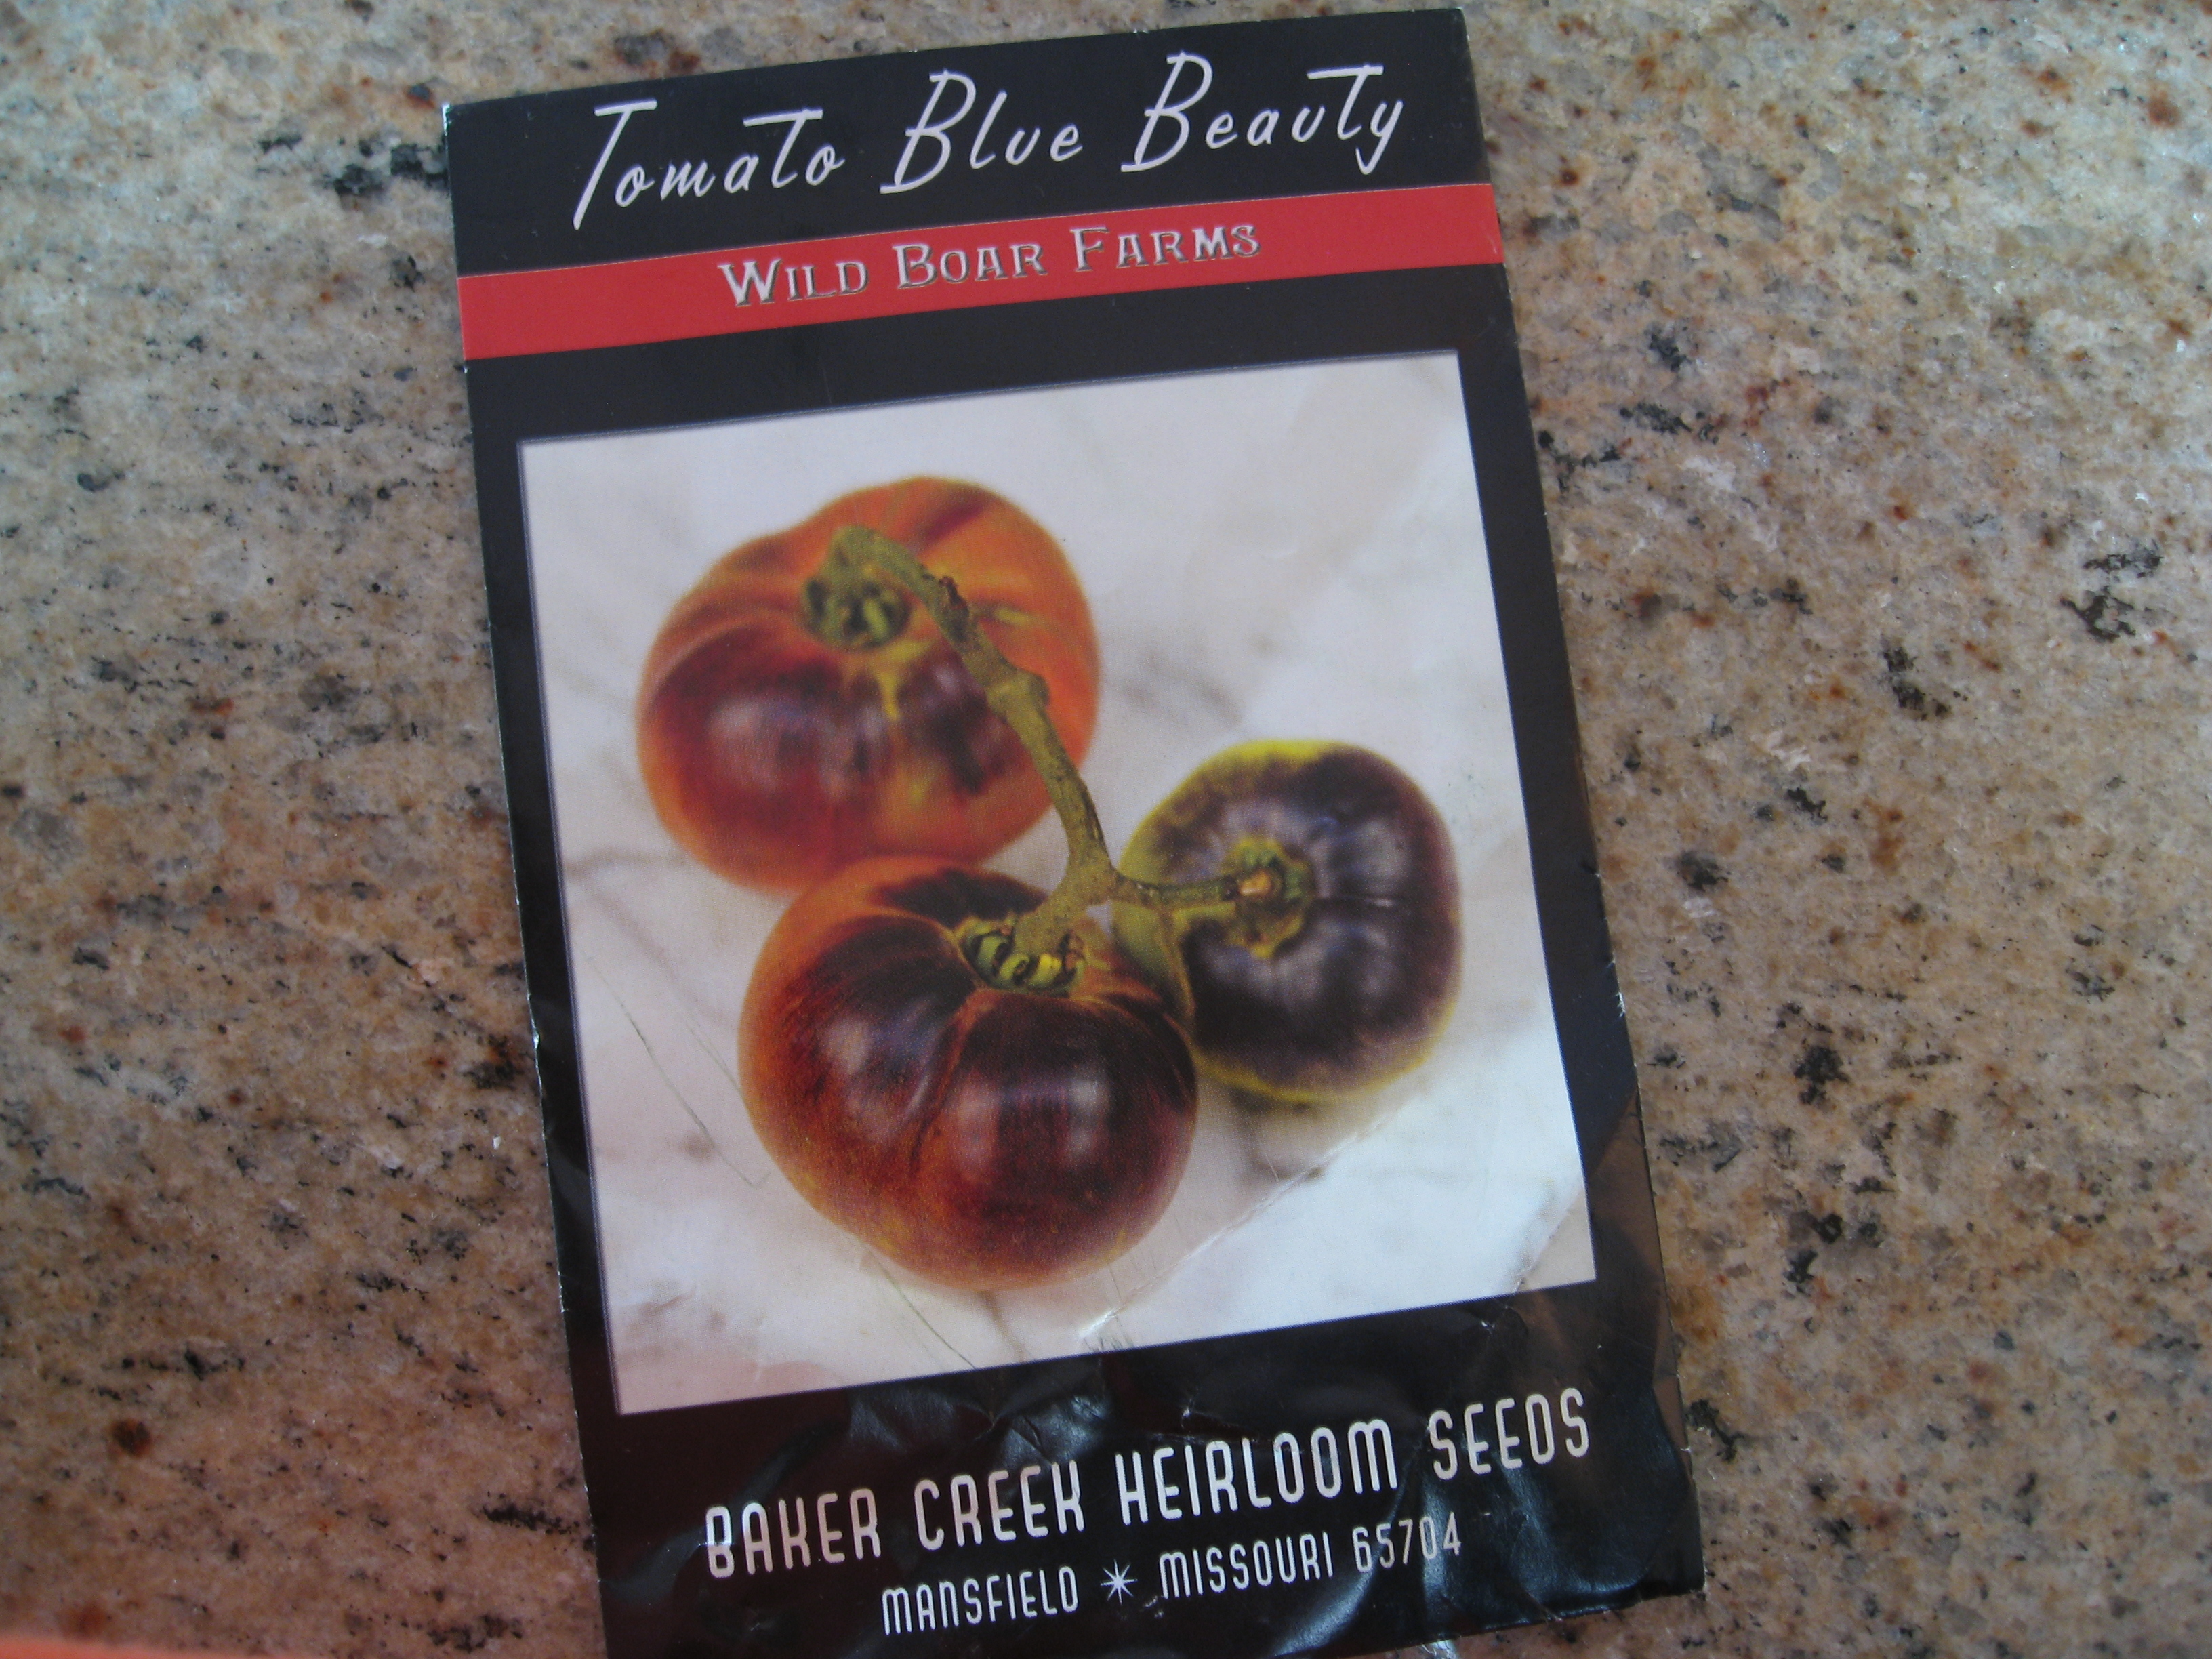 Blue, black and purple tomatoes have gained popularity once Brad figured out how to make them taste better than the original introductions.